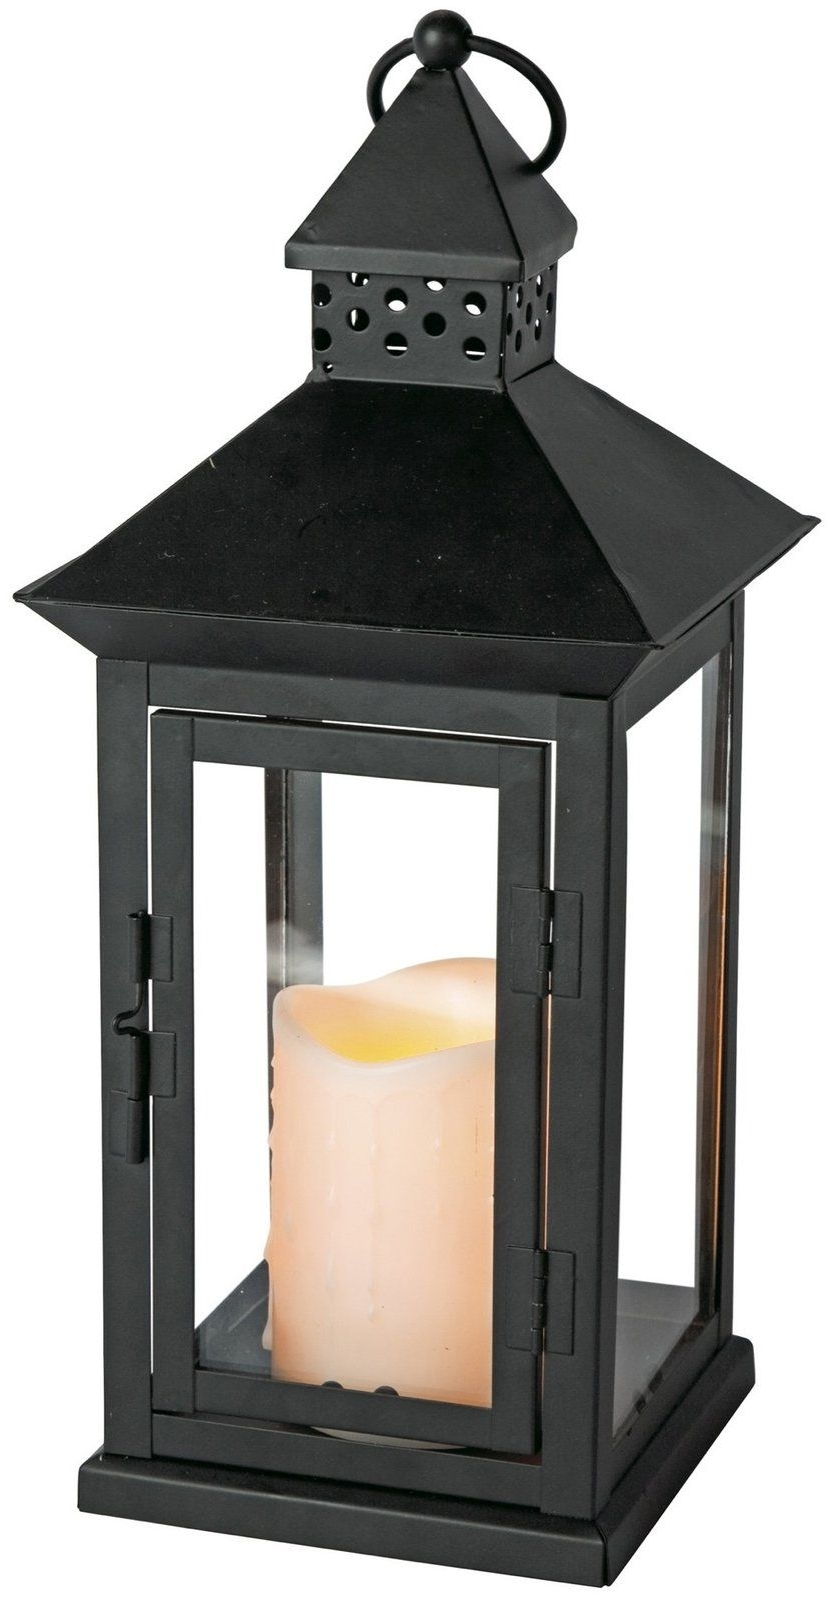 Newest Indoor Outdoor Flameless Candle Lantern W/ Timer, 8.5 X (View 11 of 20)